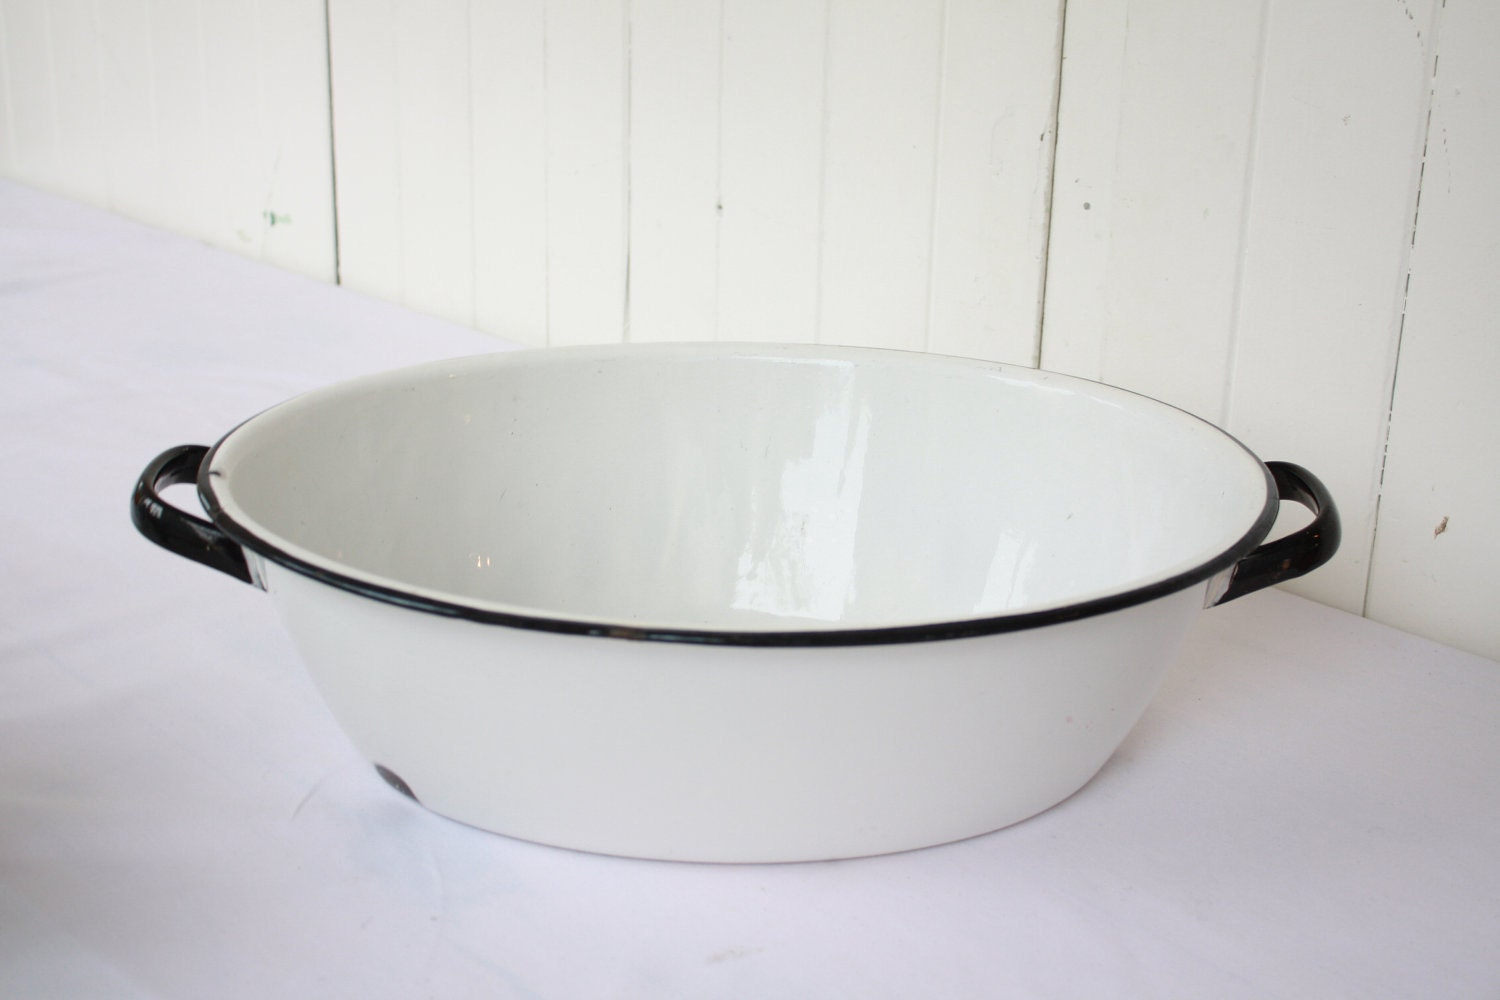 White Enamel Basin Tub With Black Trim Vintage